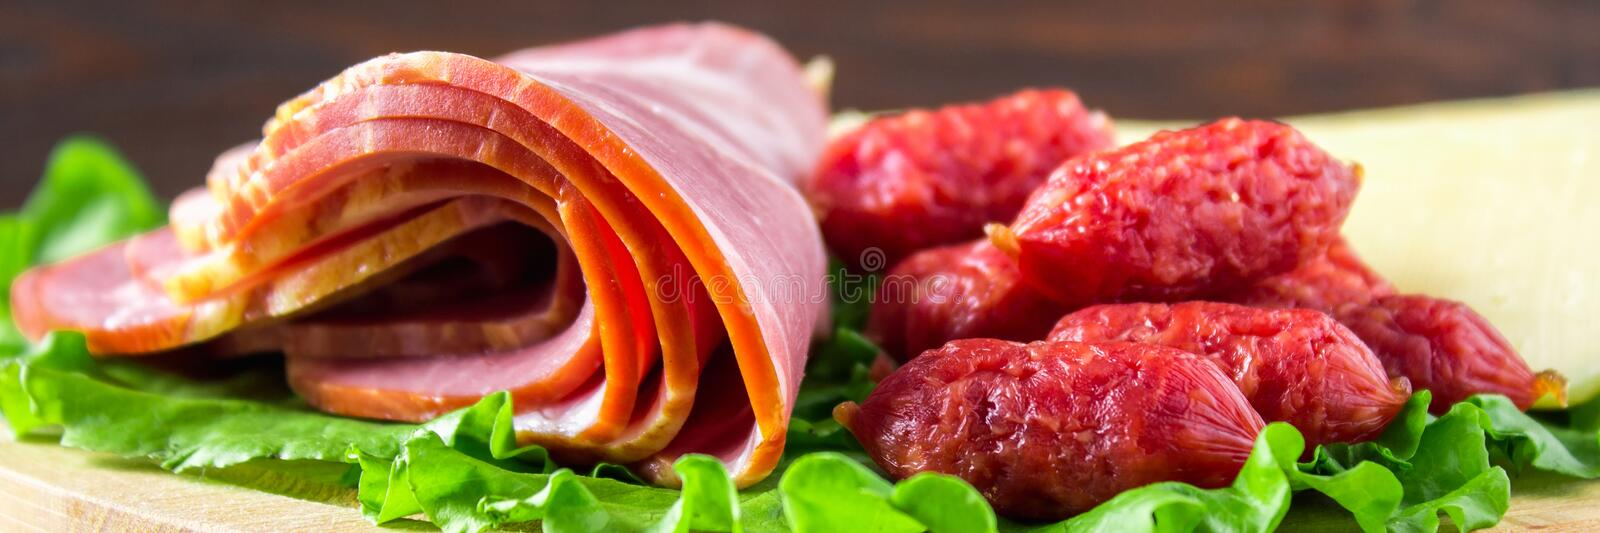 Assorted meat products including ham and sausages. cheese banner stock photography